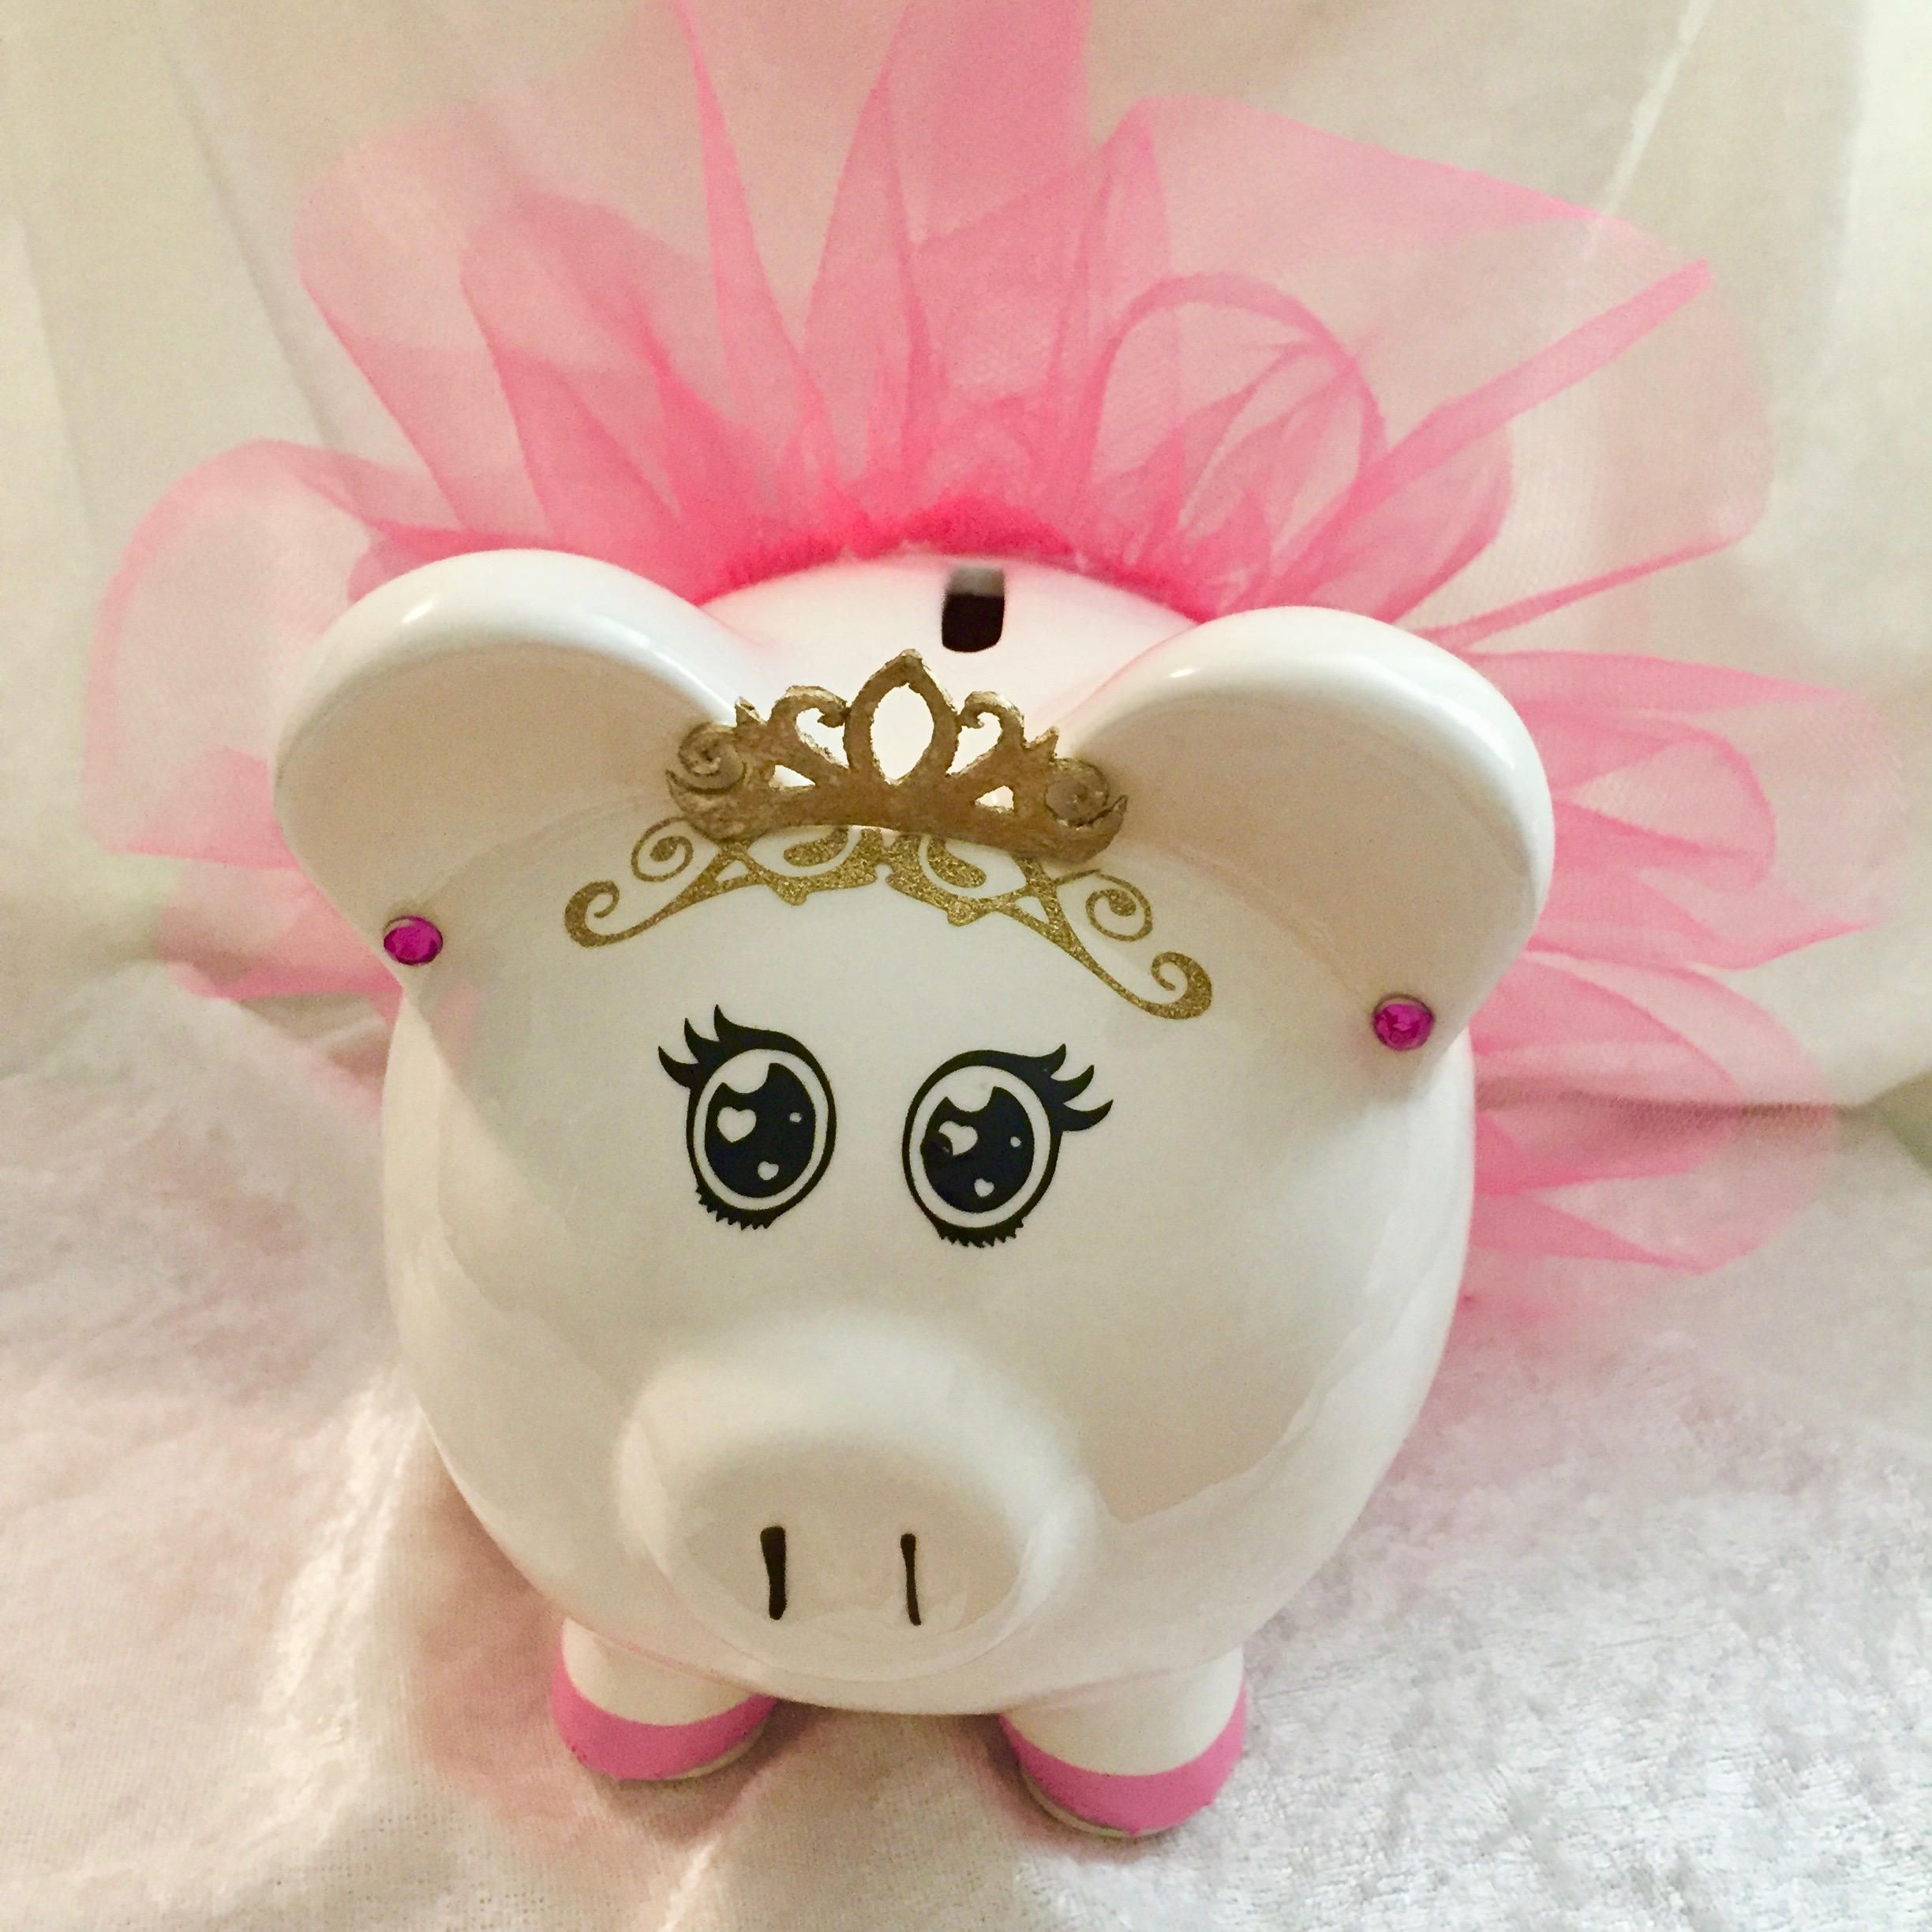 Personalized Princess Ballerina Piggy Bank With Tutu Ballet Slippers Earrings And Handmade Gold Crown And Beautiful Las Piggy Piggy Bank Diy Pink Piggy Bank